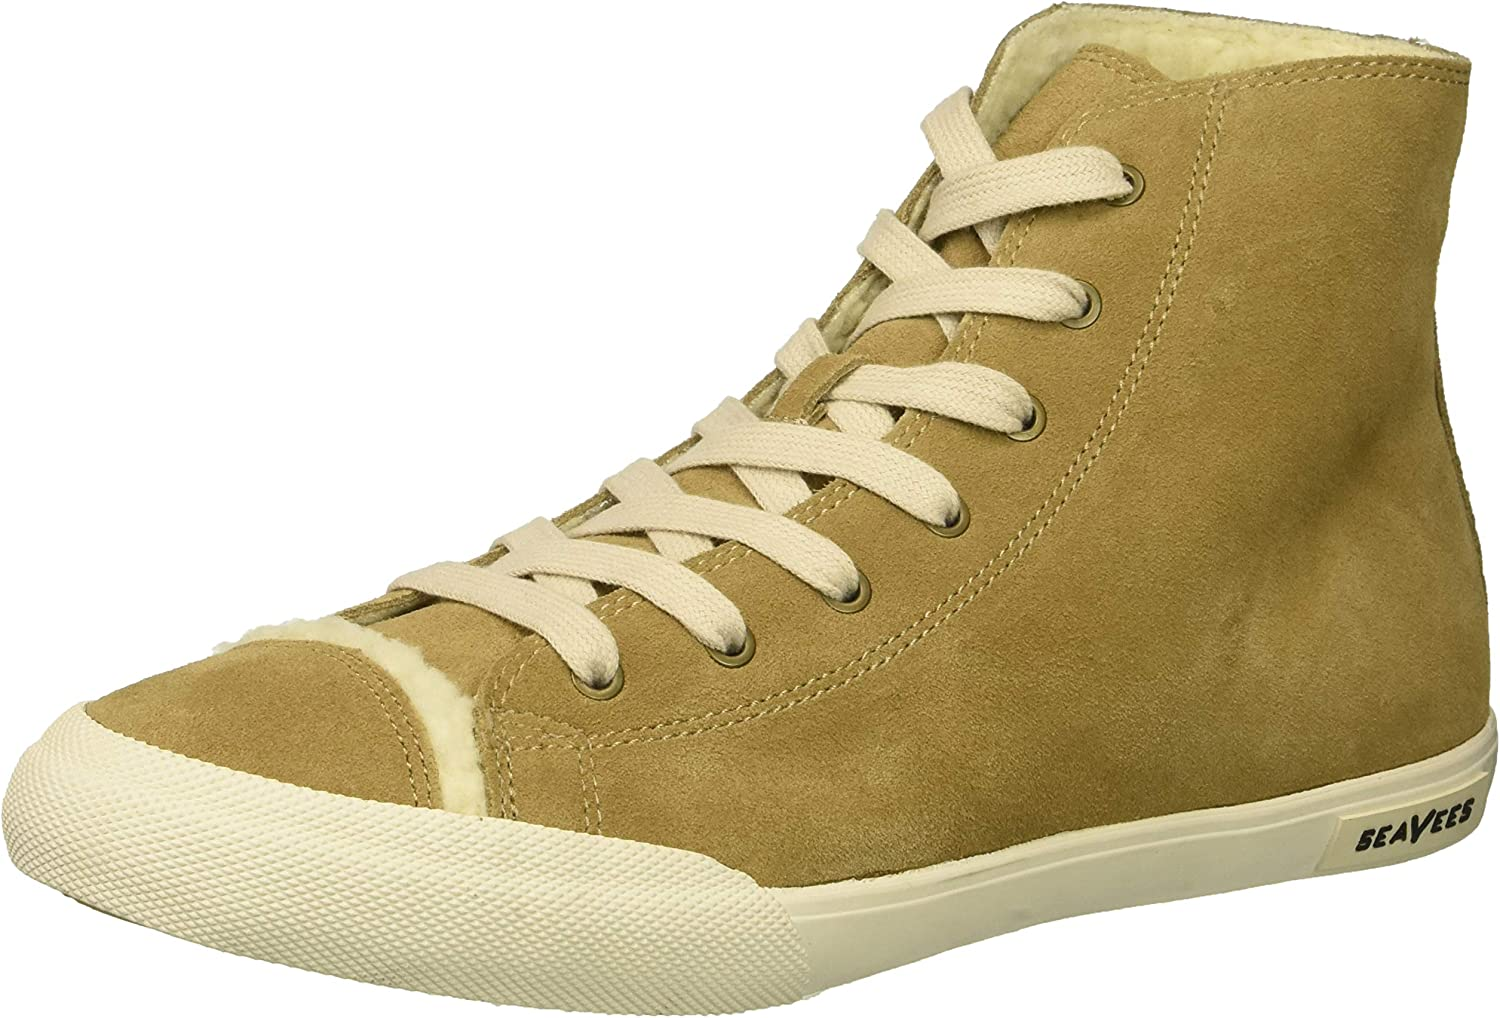 SeaVees Womens Army Issue High Wintertide Sneaker